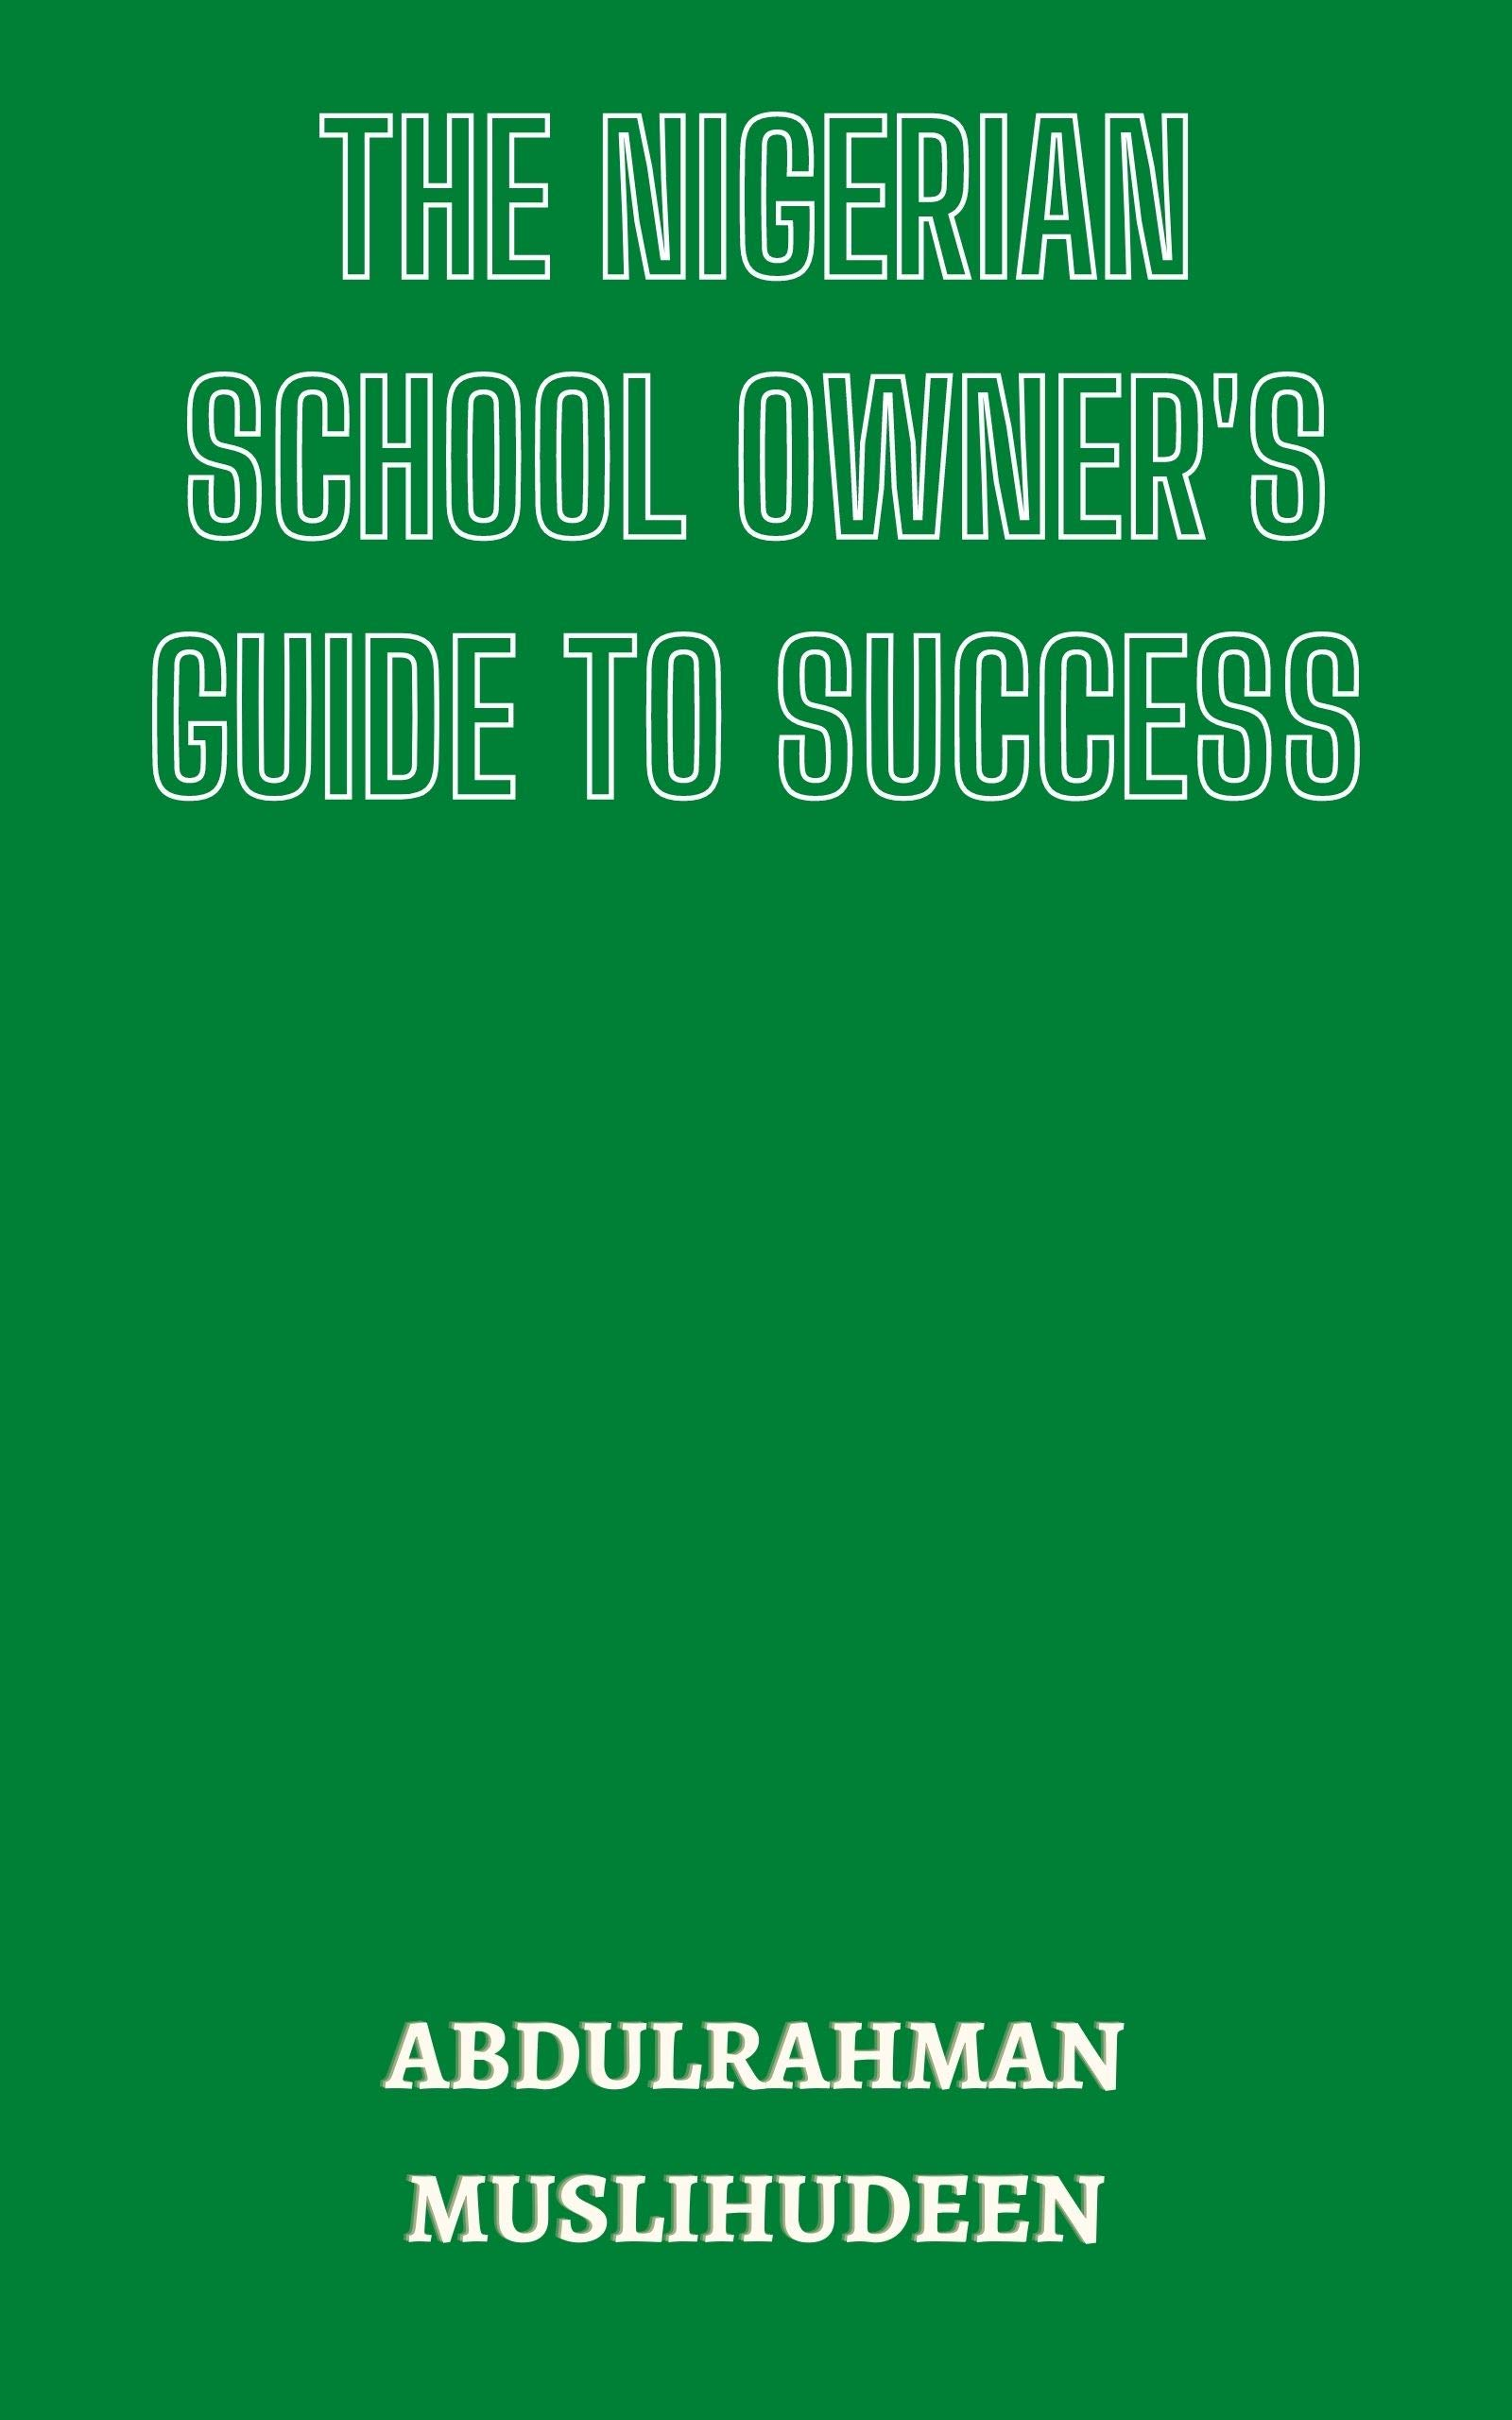 The Nigerian School Owner's Guide to Success